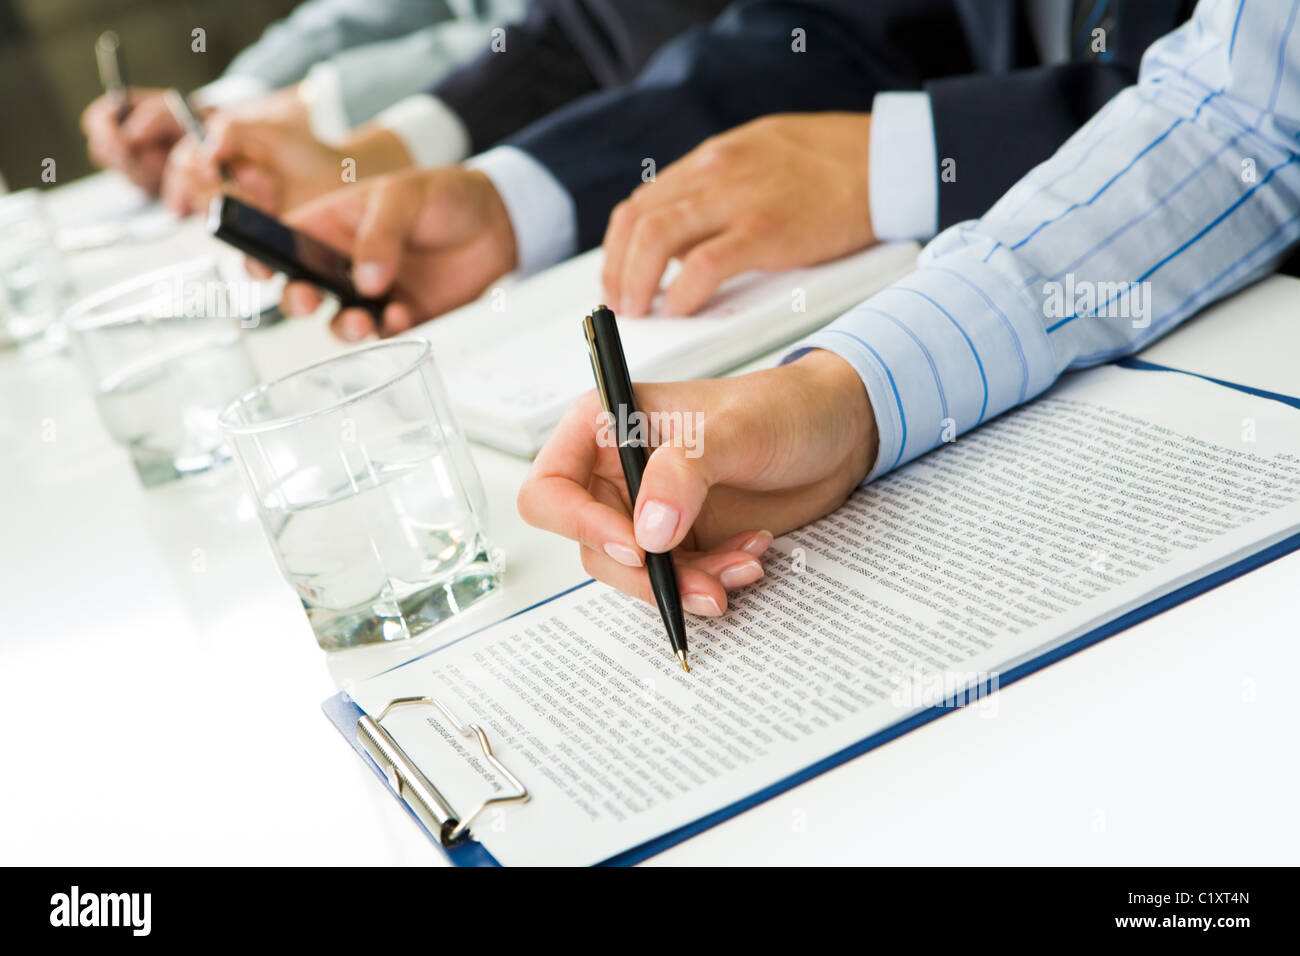 Image of human hand over paper during business seminar - Stock Image